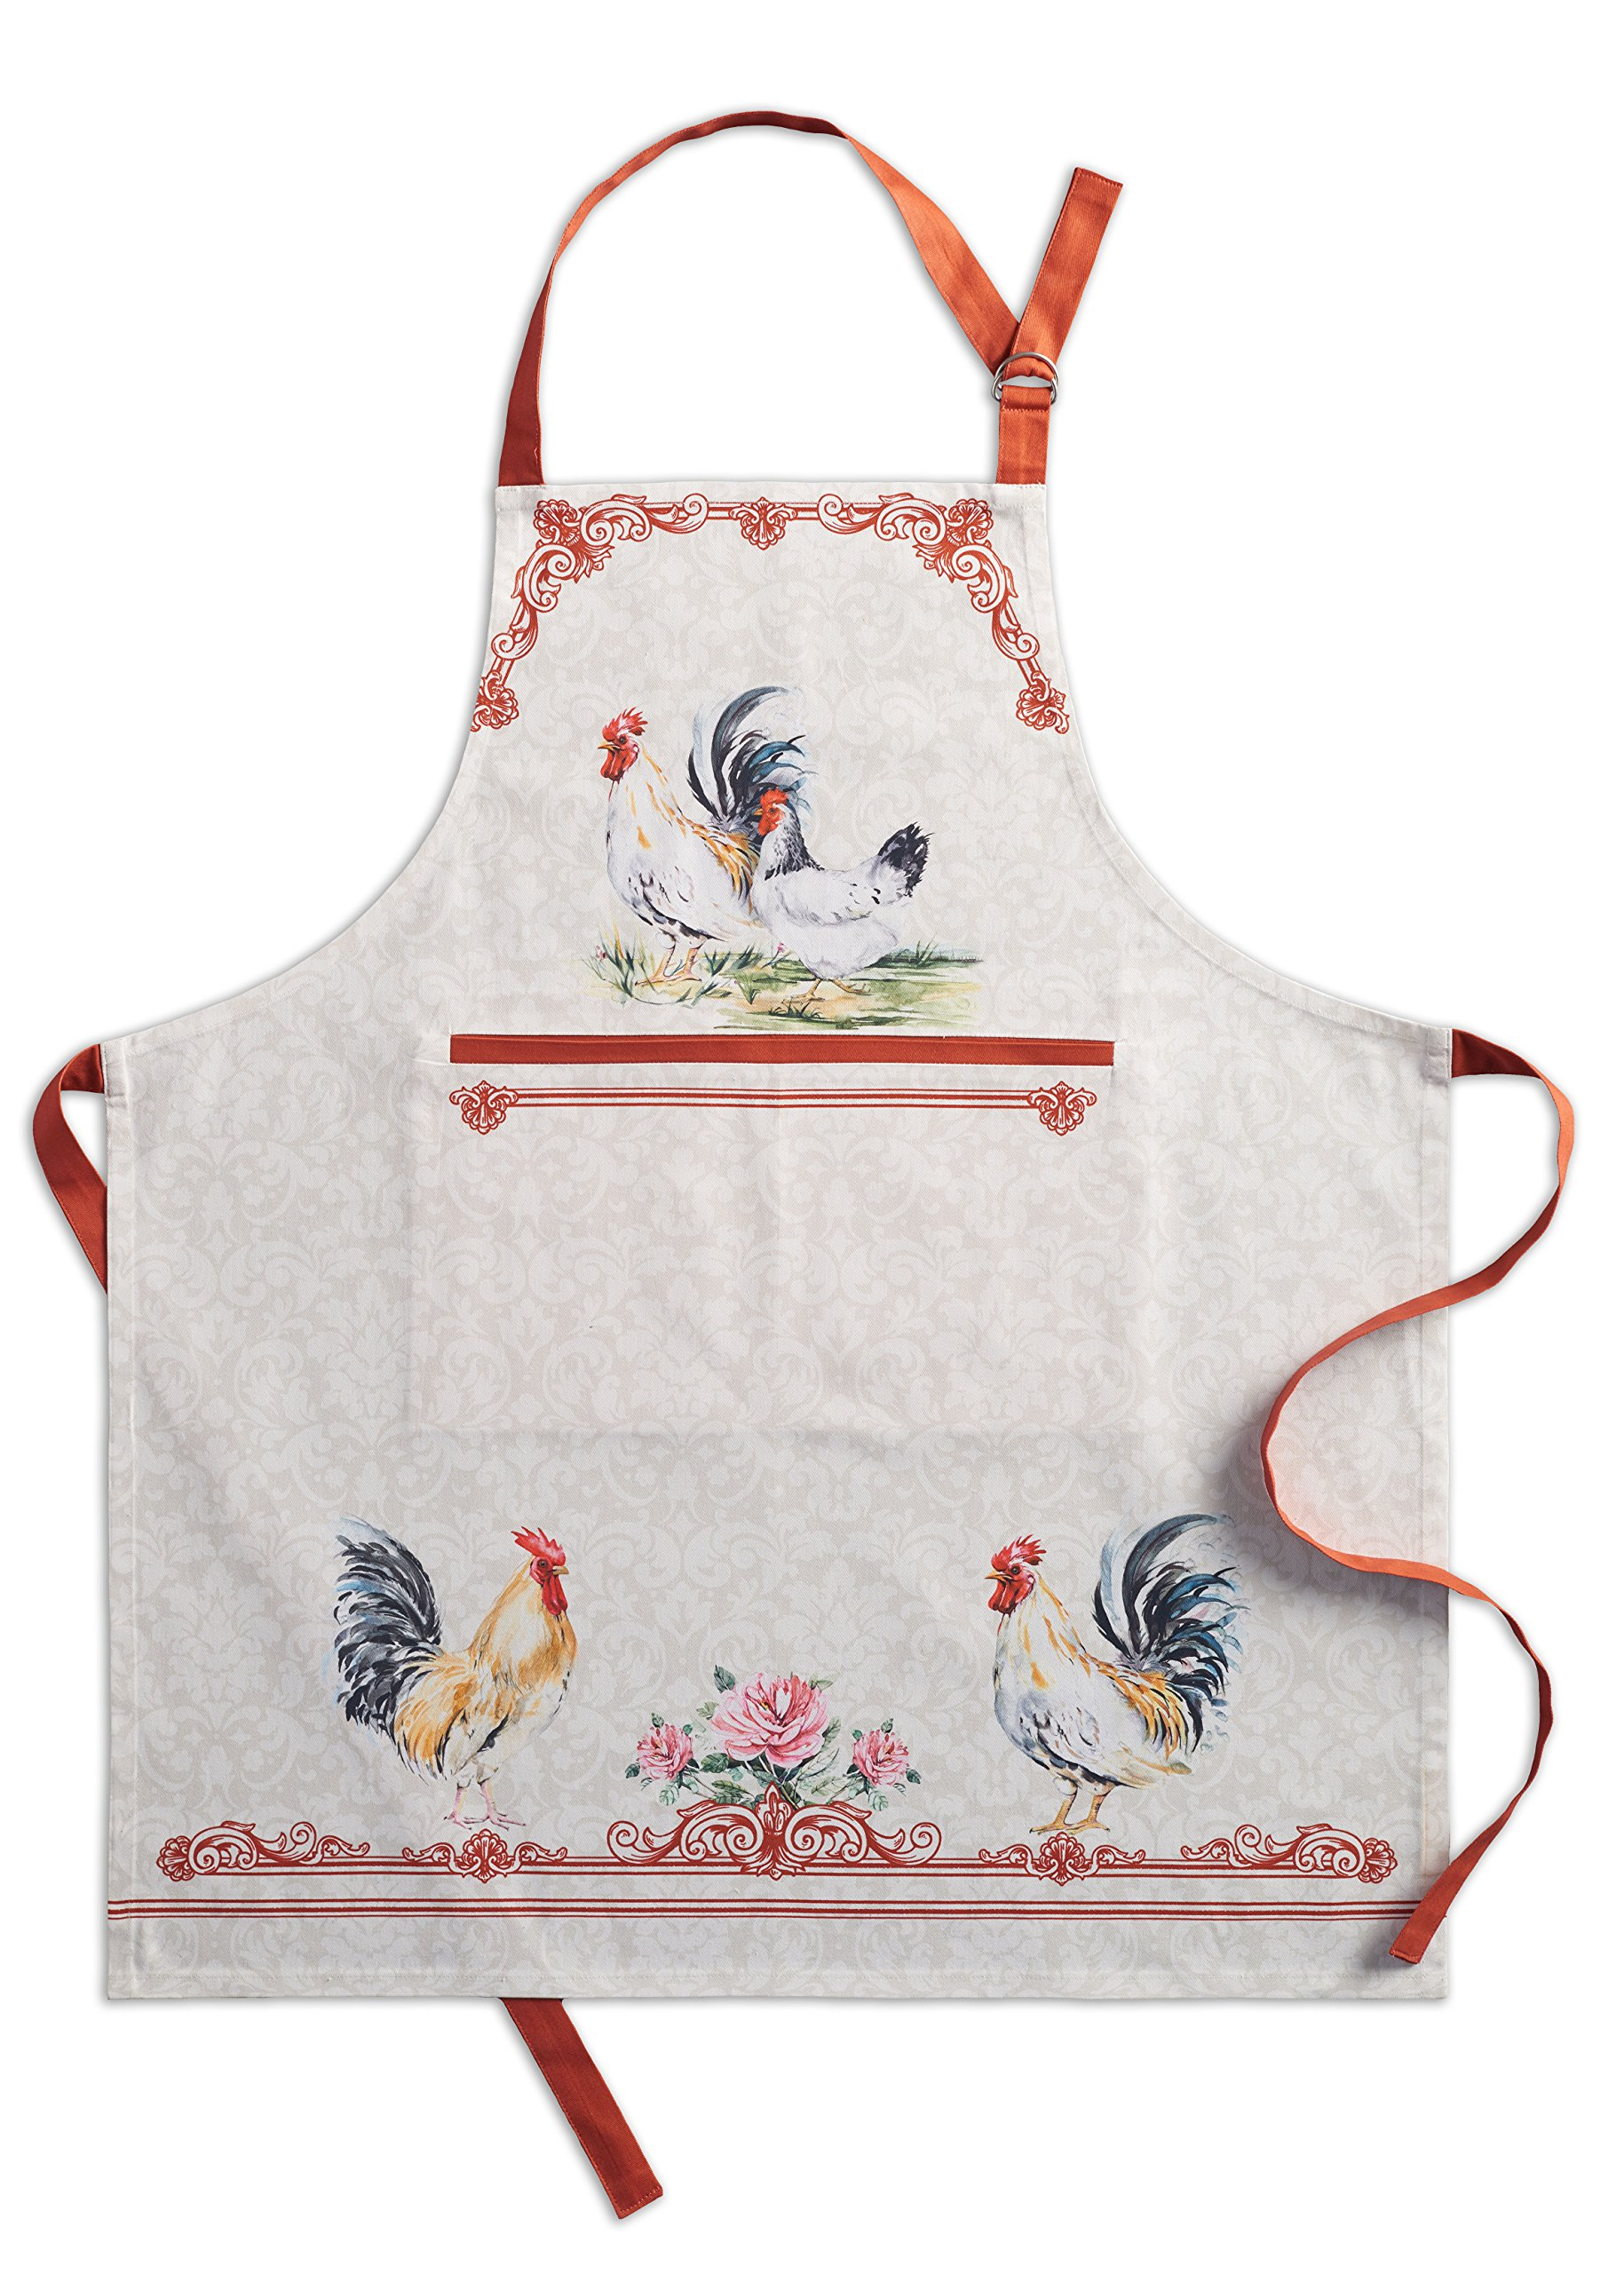 Maison d' Hermine Campagne 100% Cotton Apron with an adjustable neck & hidden center pocket 27.50 - inch by 31.50 - inch